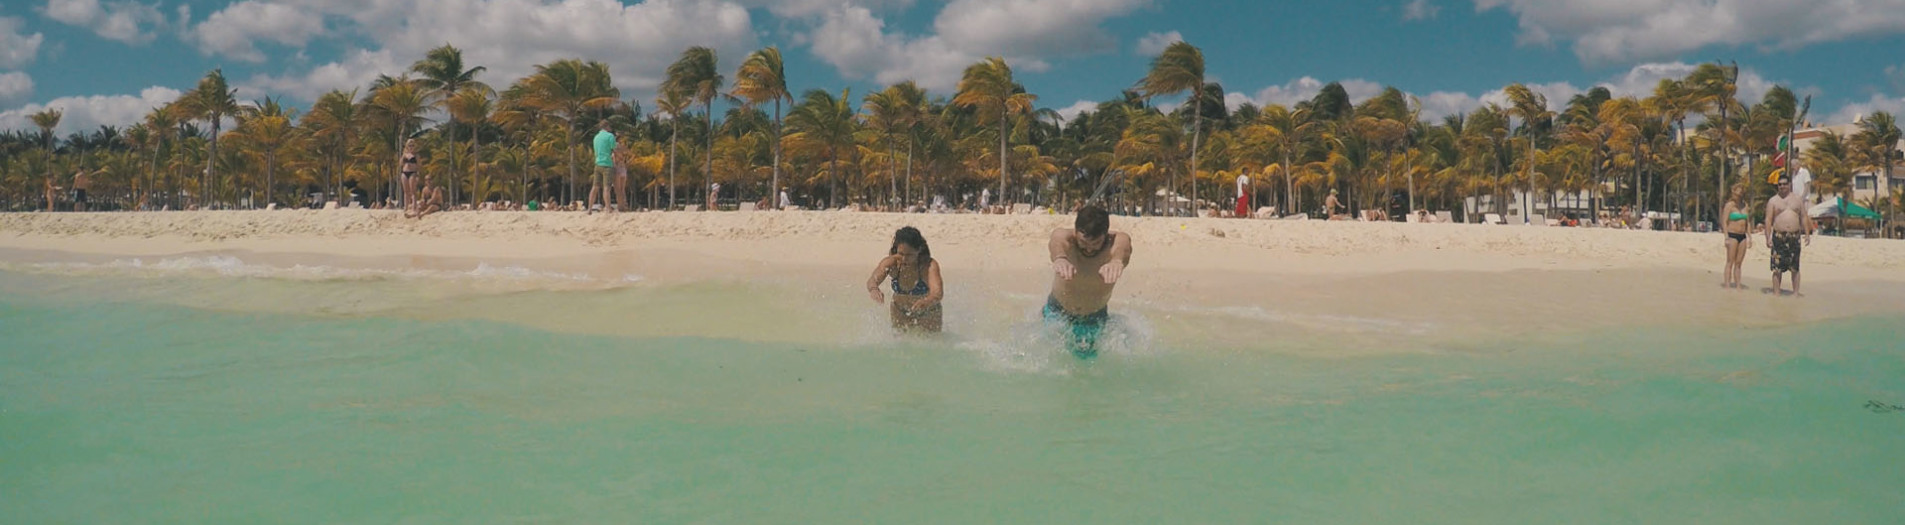 Nikko & Darell // Destination Wedding Film // Mayan Riviera